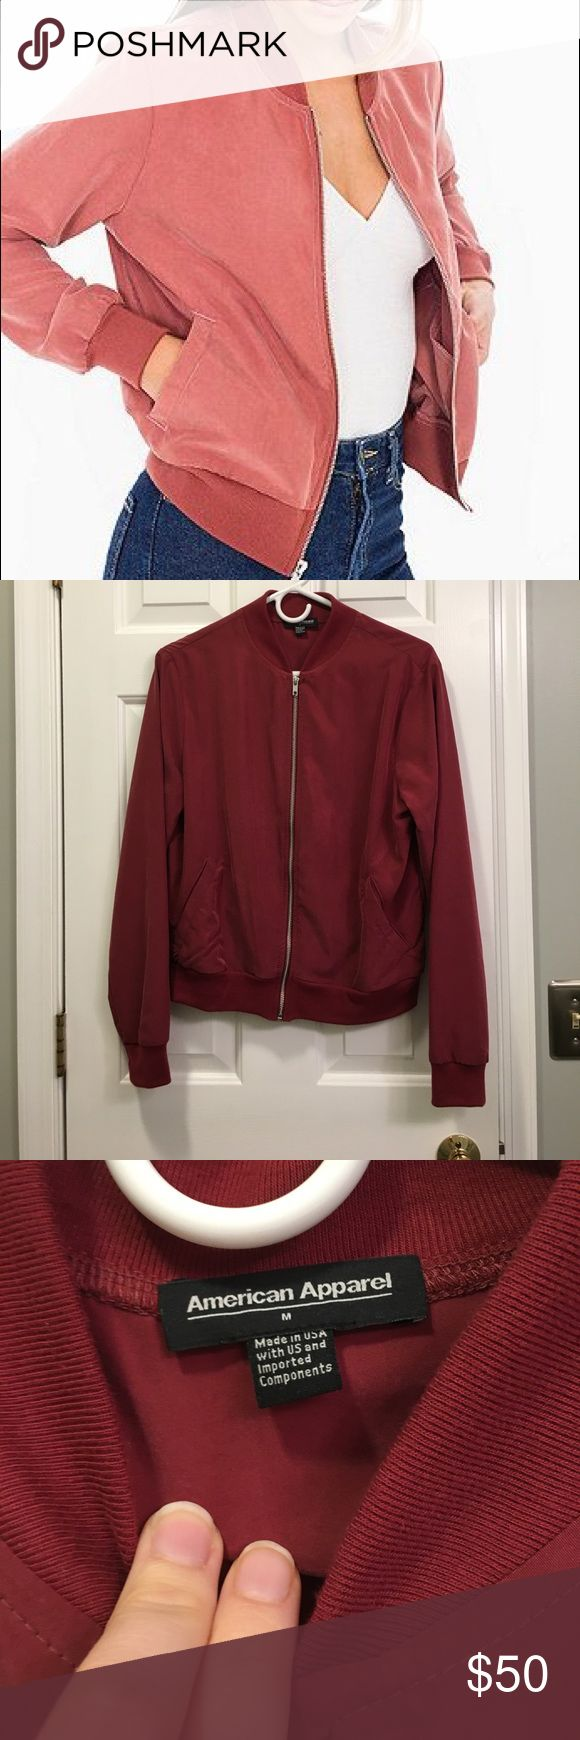 """American Apparel bomber jacket NEVER WORN. The color is """"wine"""". Size medium but runs small! THE COLOR IS DARKER THAN THE ONE SHOWN ON MODEL. American Apparel Jackets & Coats"""